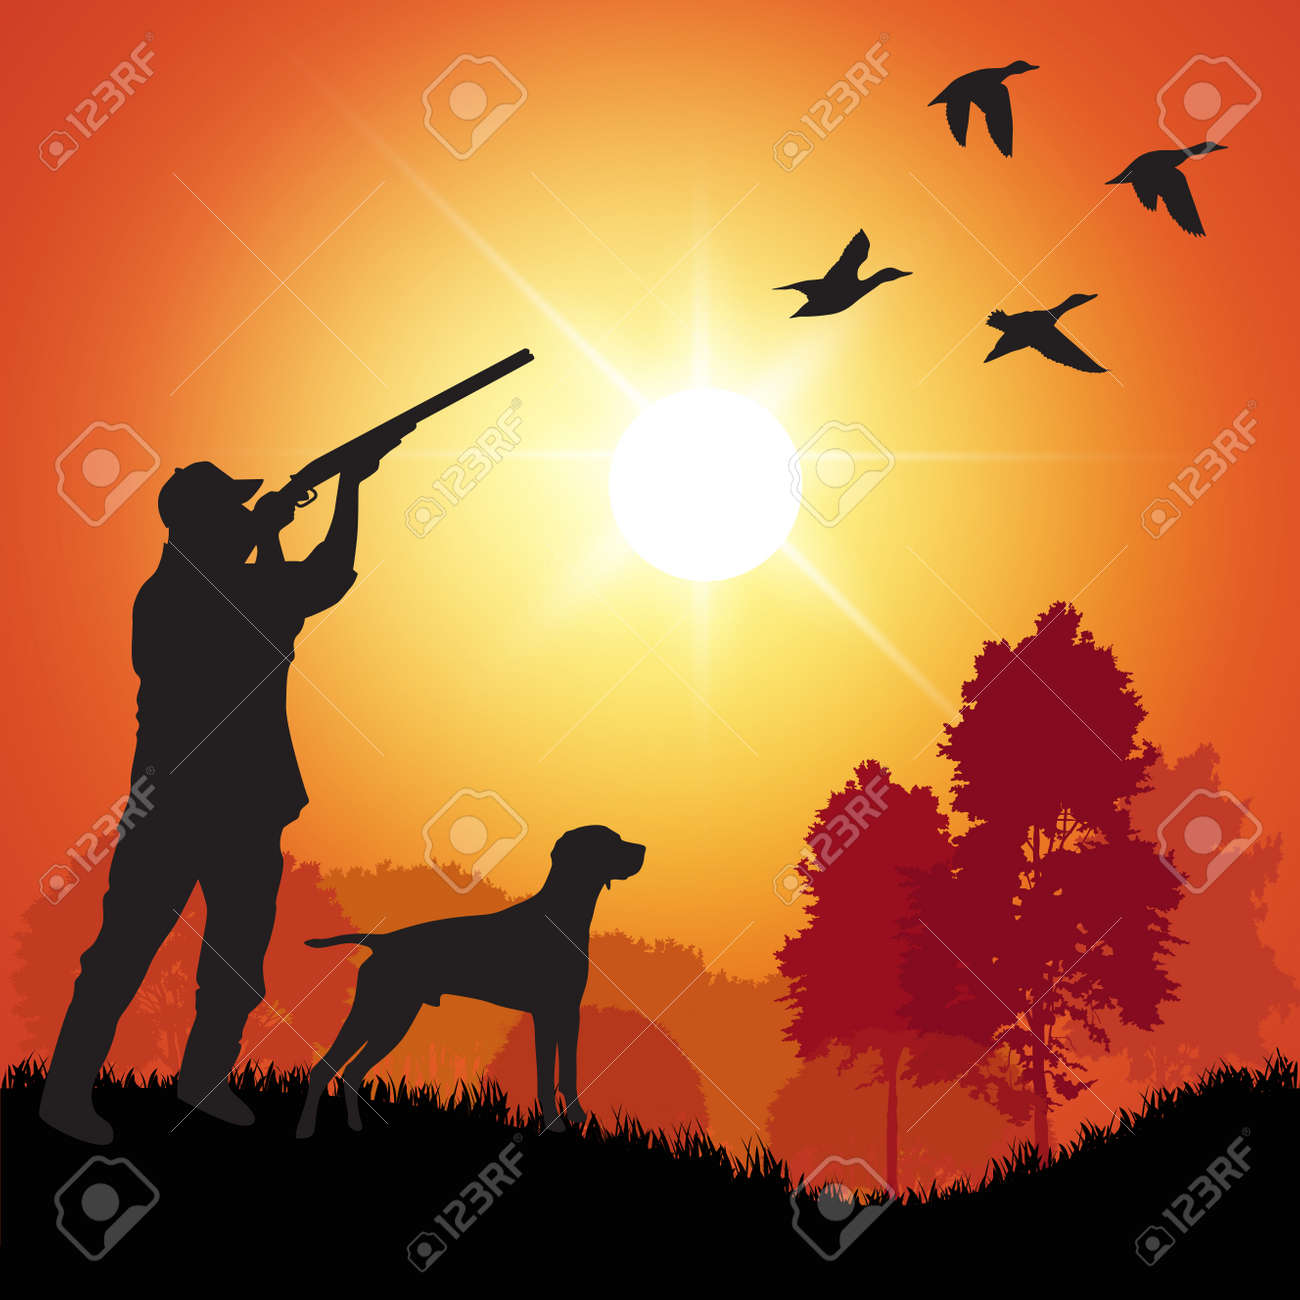 Silhouette of men on the duck hunting. Vector illustration - 39814795